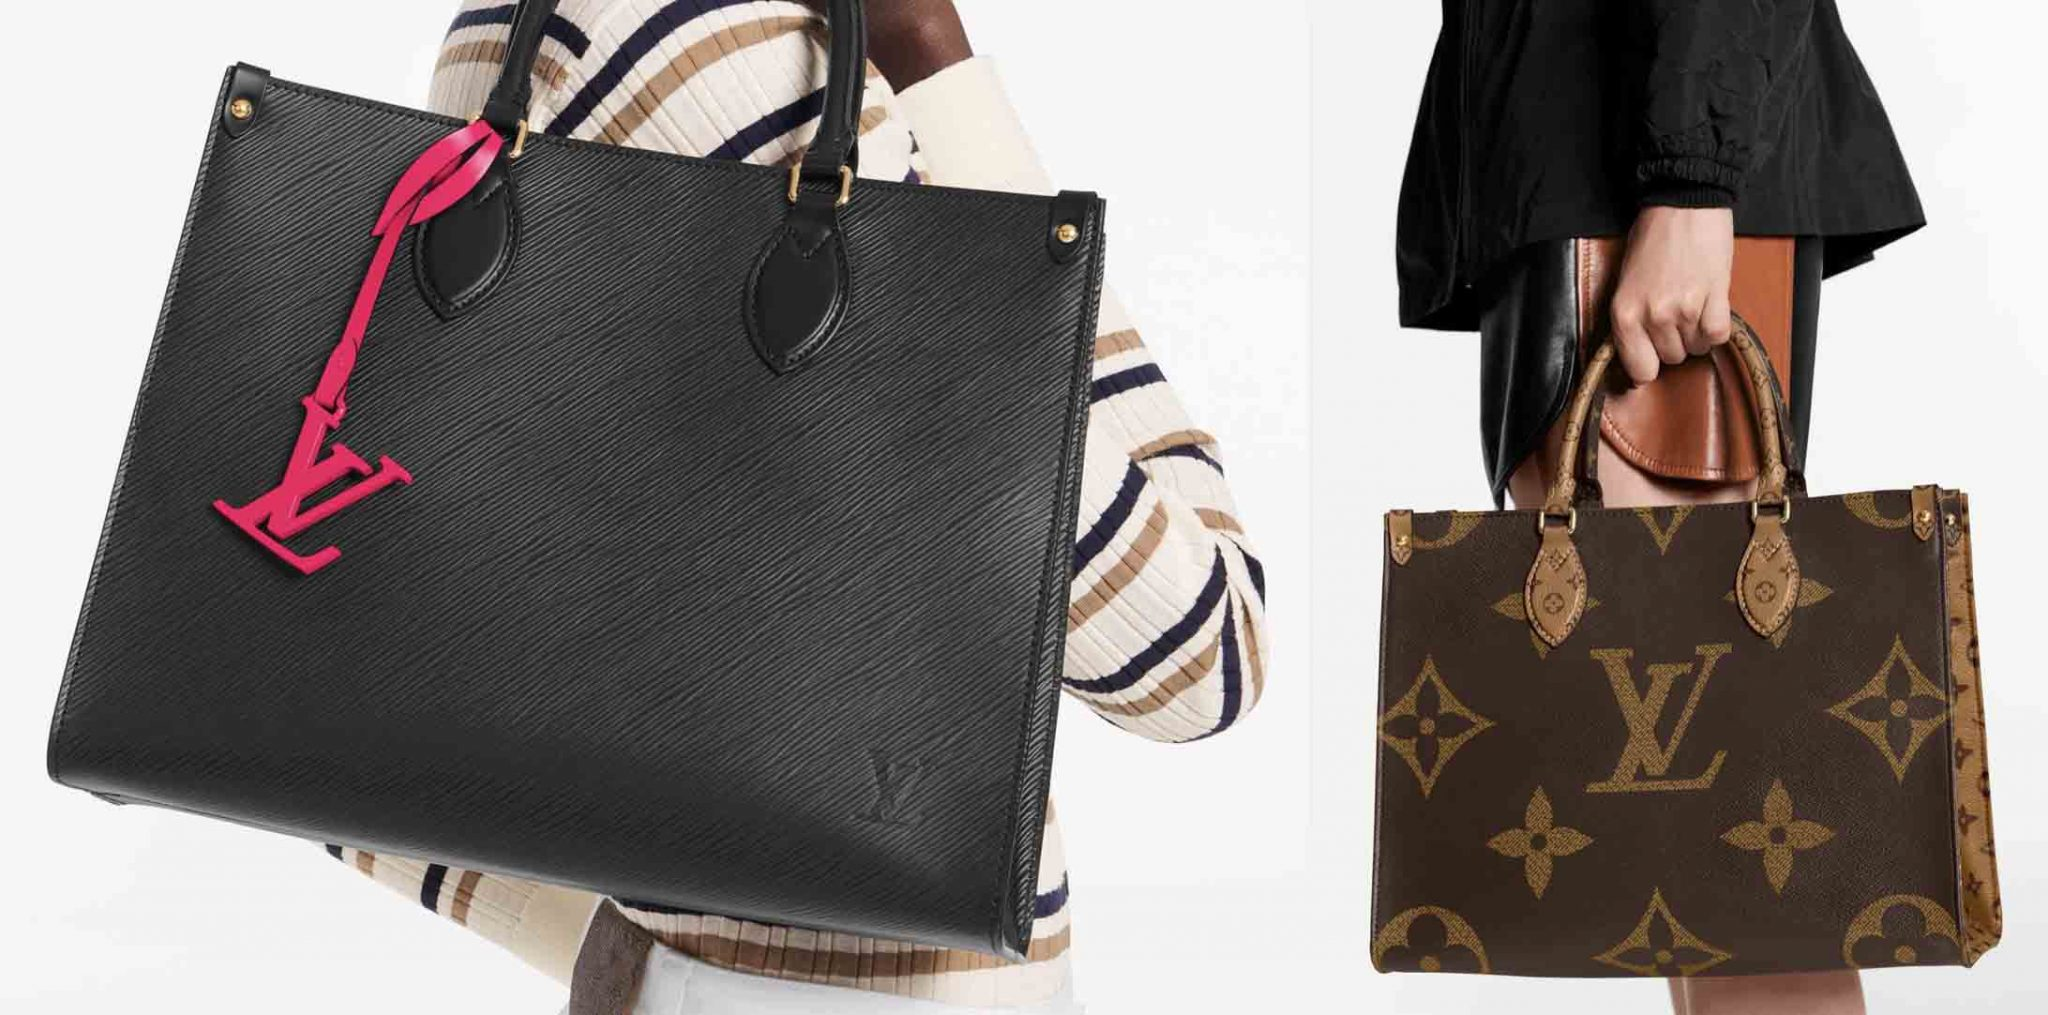 Louis Vuitton OnTheGo Tote Bag Ultimate Guide